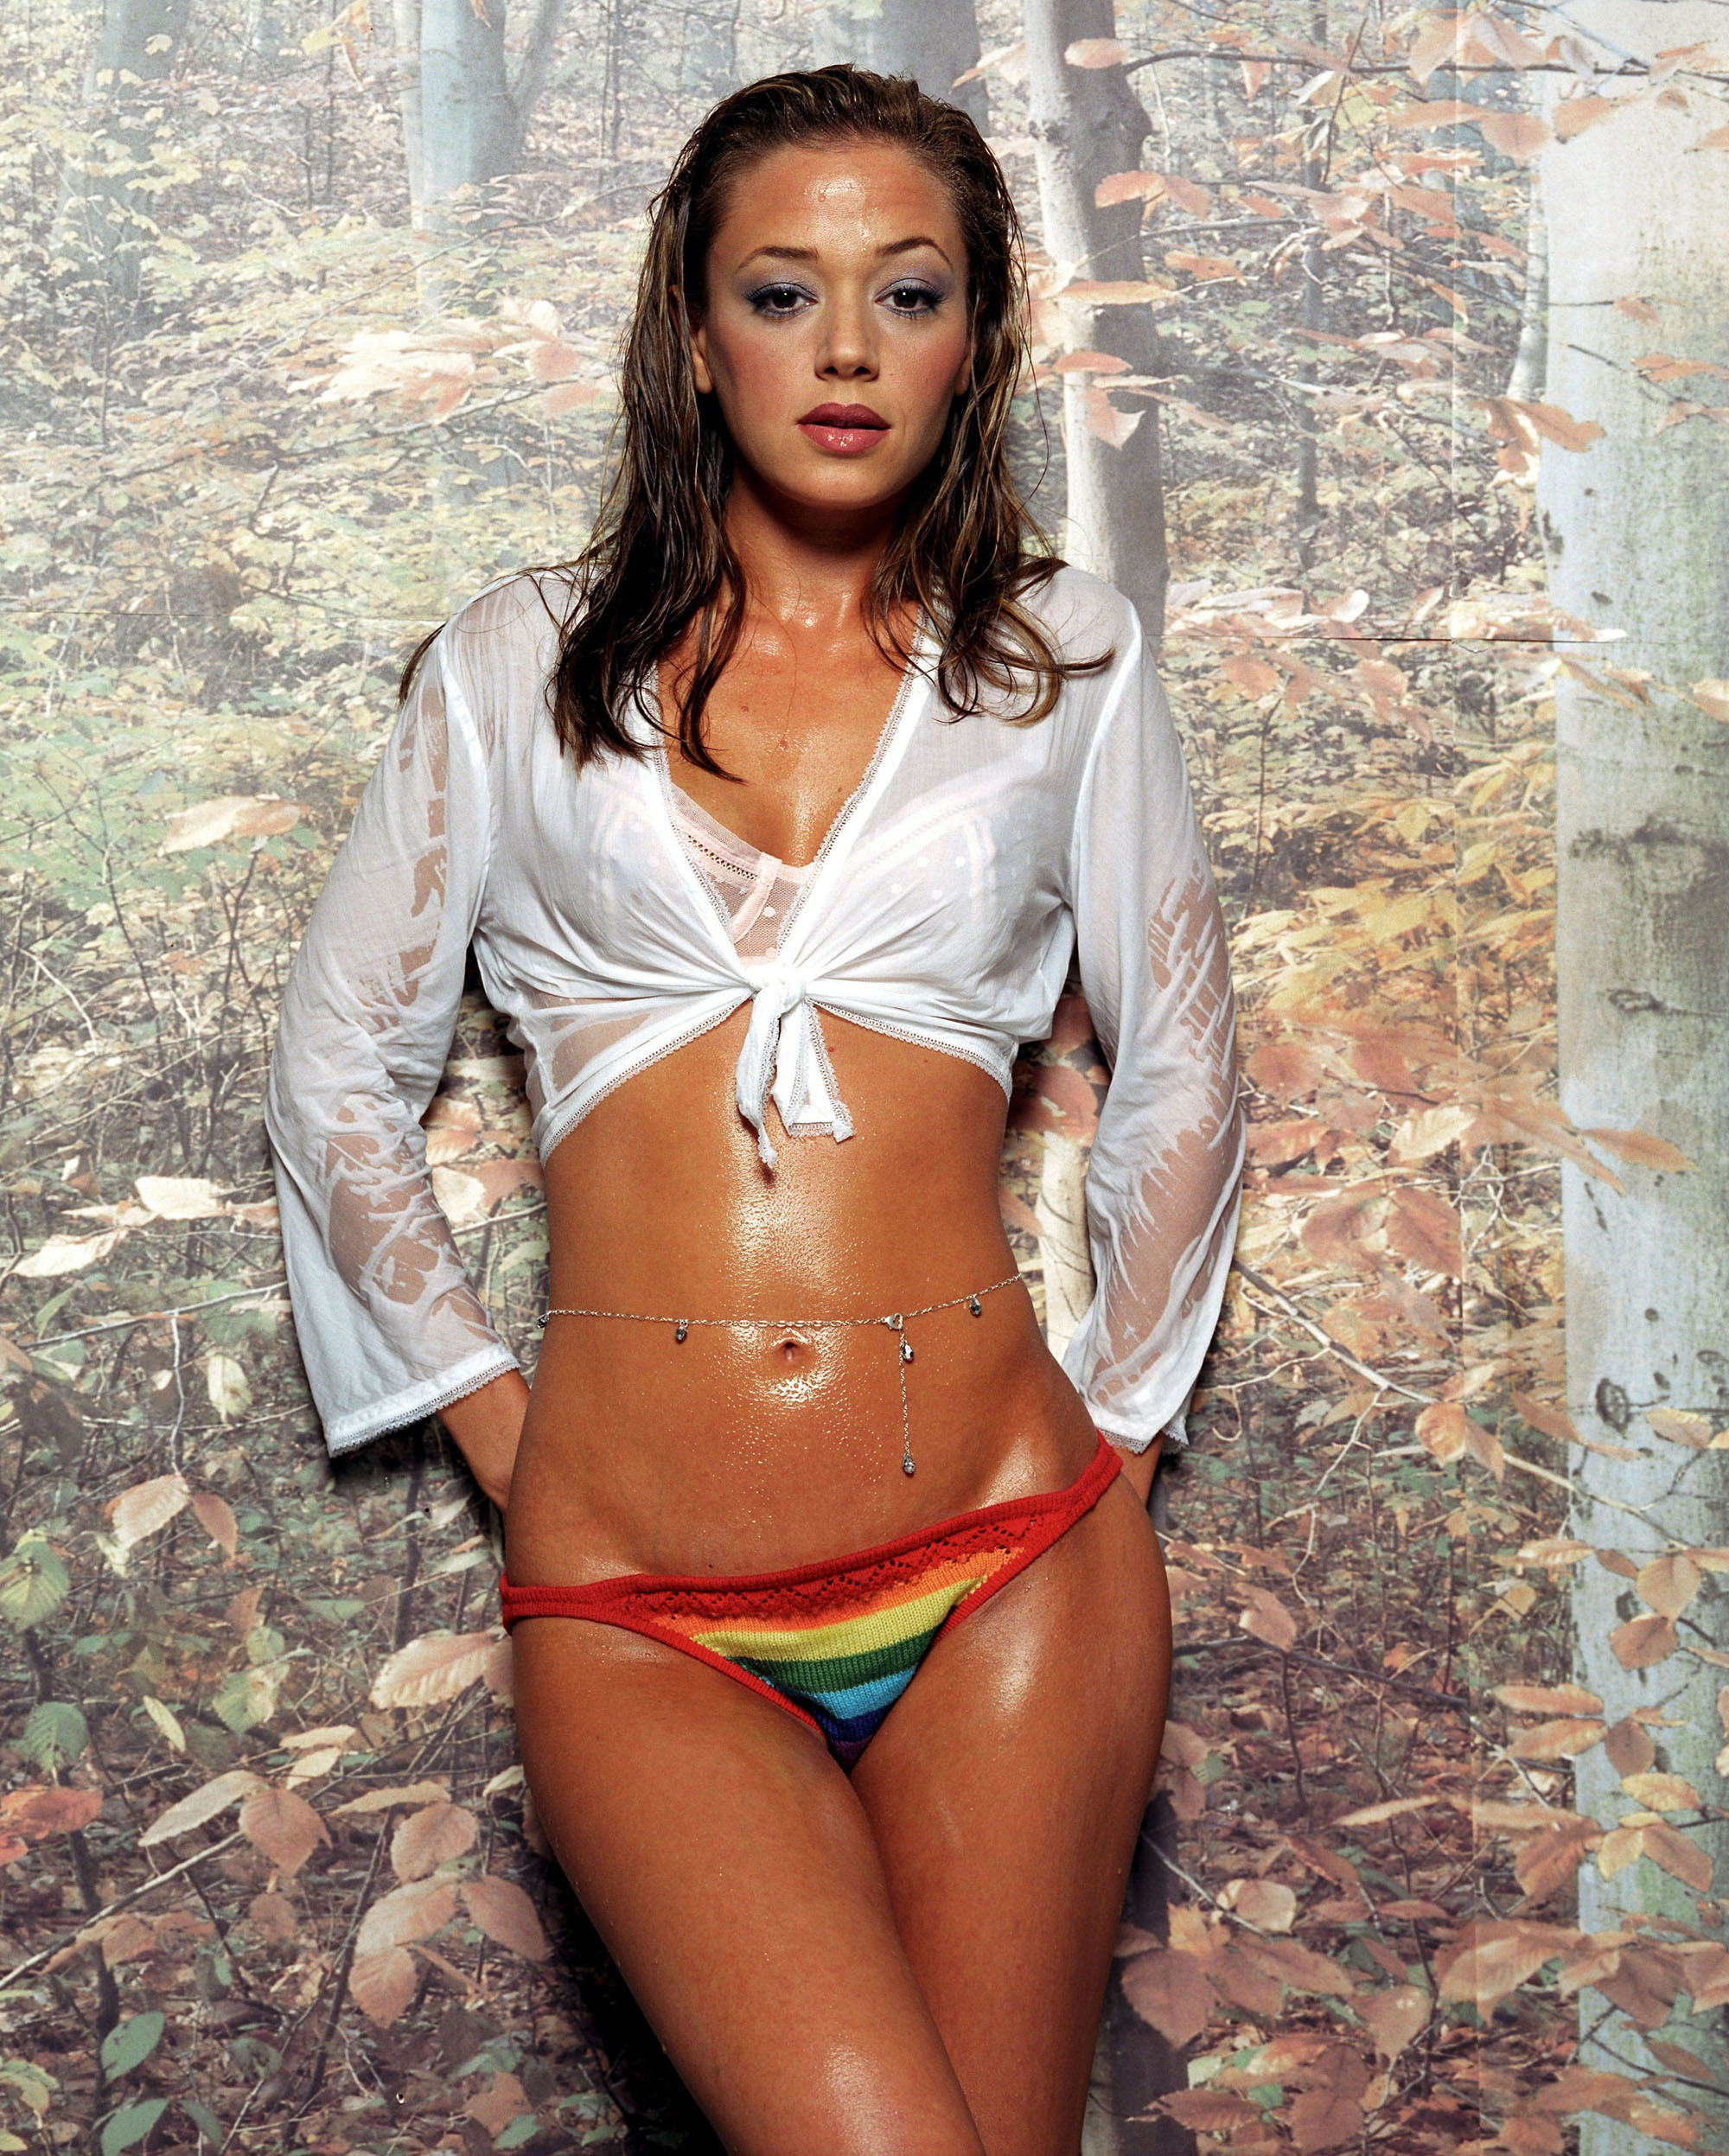 leah remini hot and sexy photos